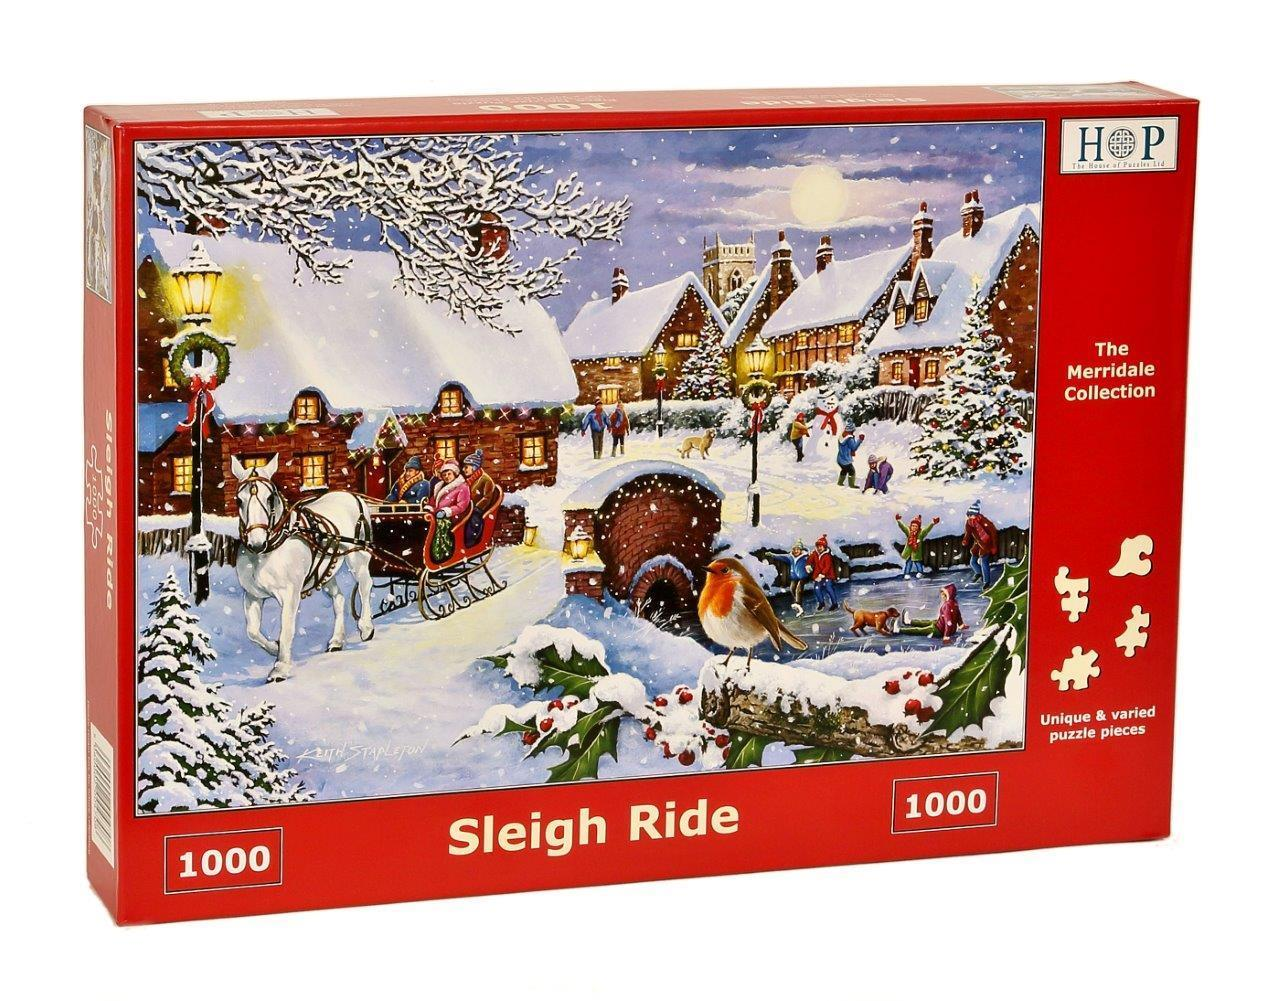 Sleigh Ride - 1000 Teile - THE HOUSE OF PUZZLES Puzzle online kaufen